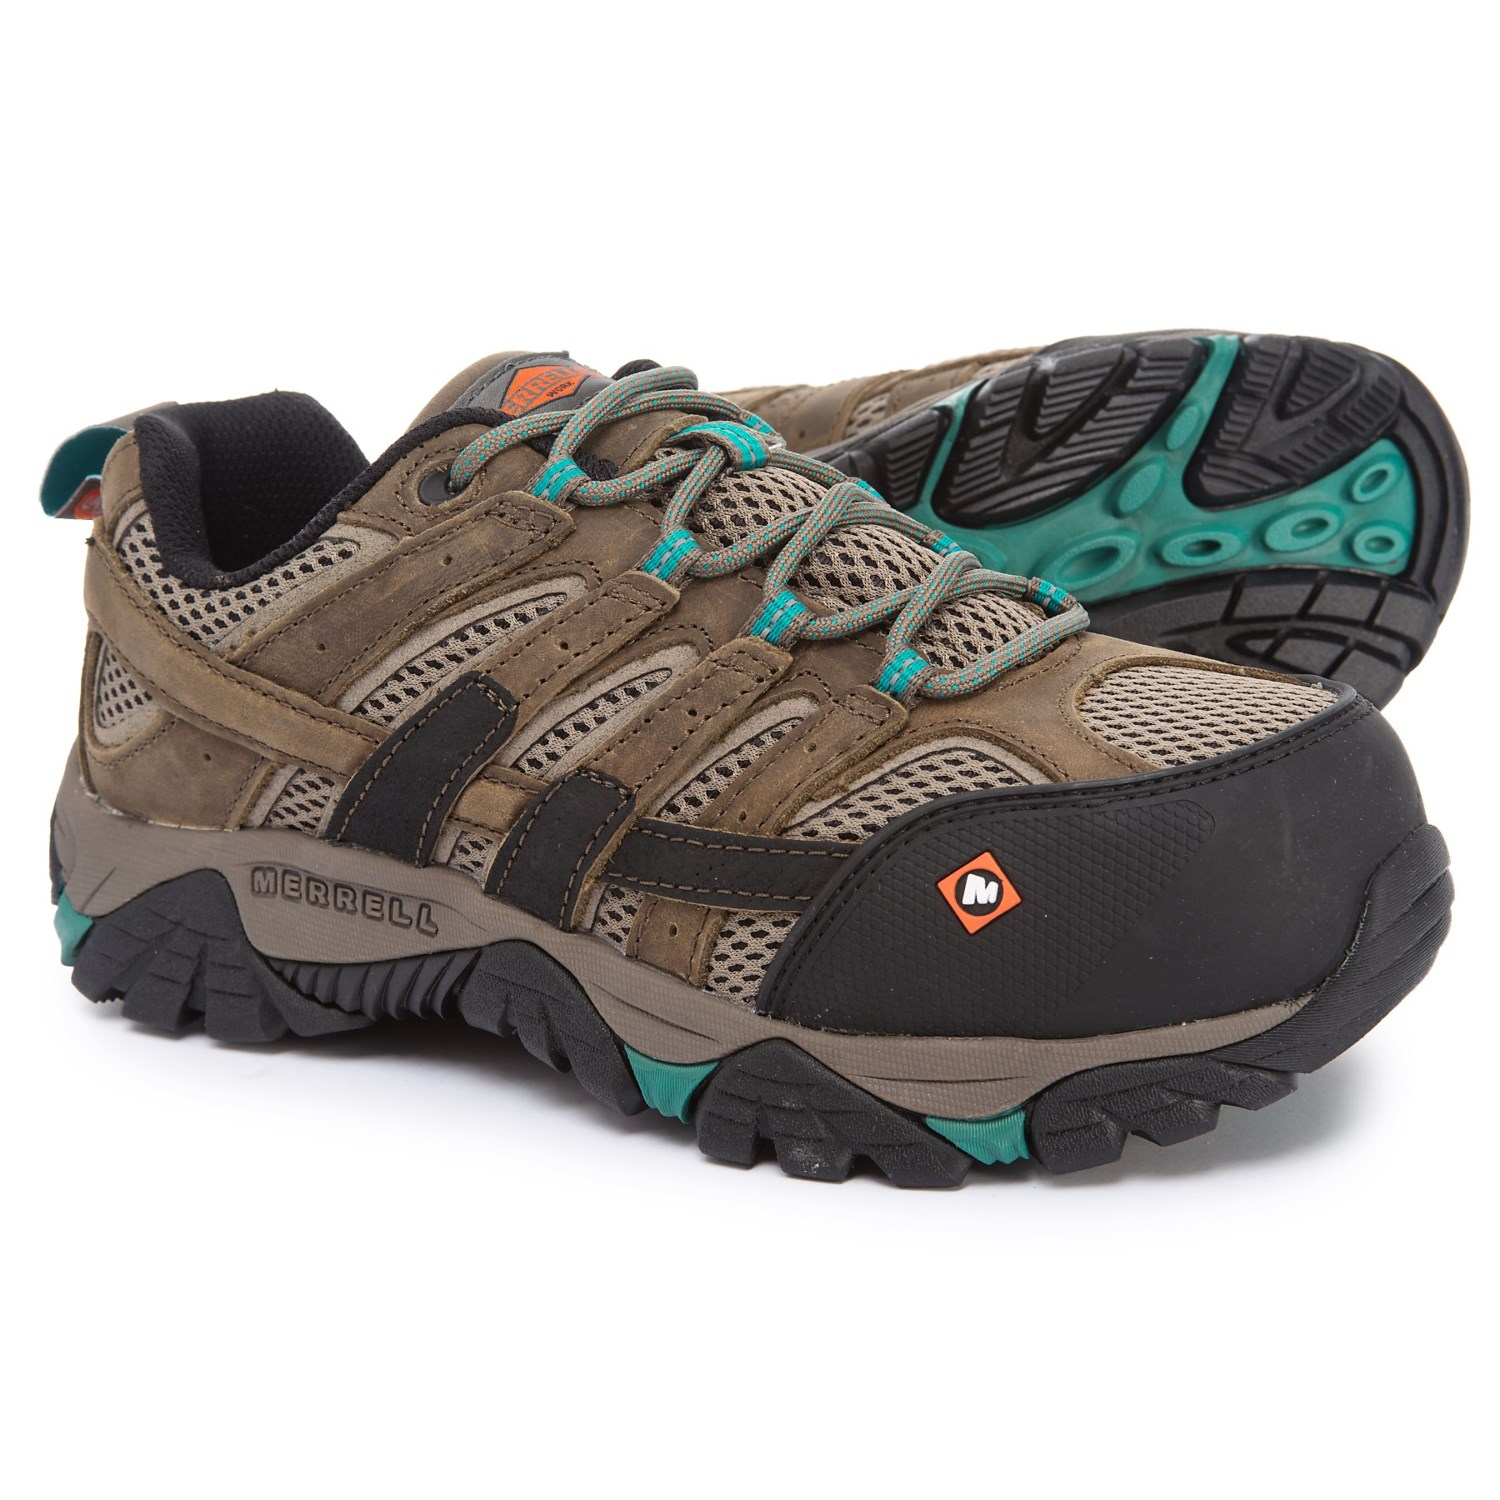 173c00cfcd Merrell Work Moab 2 Vent Low Shoes (For Women) - Save 49%